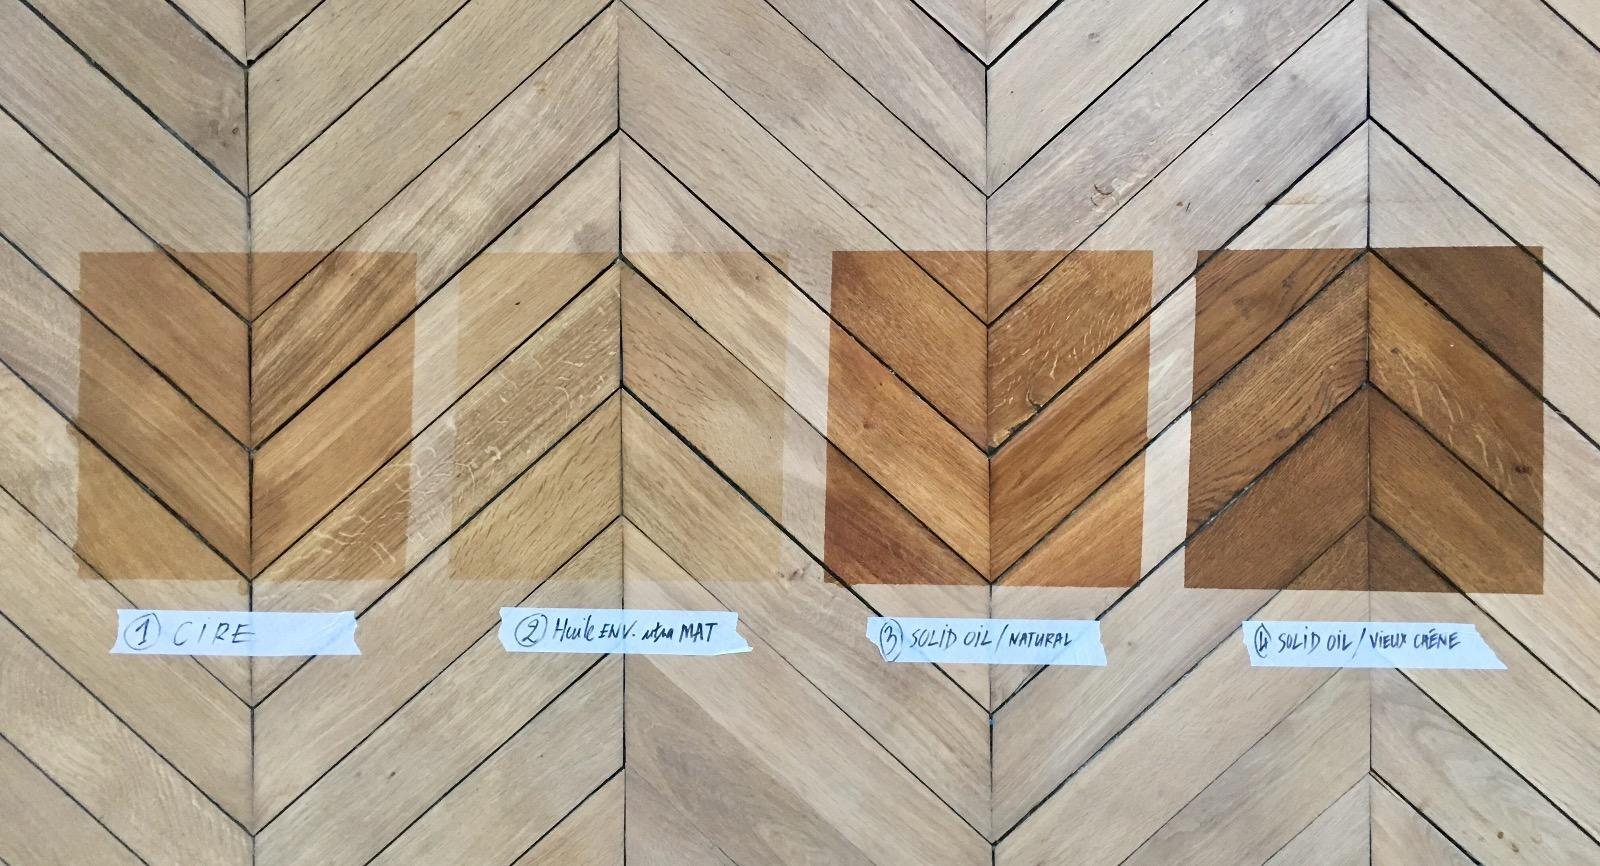 Vitrification parquet – Paris 16